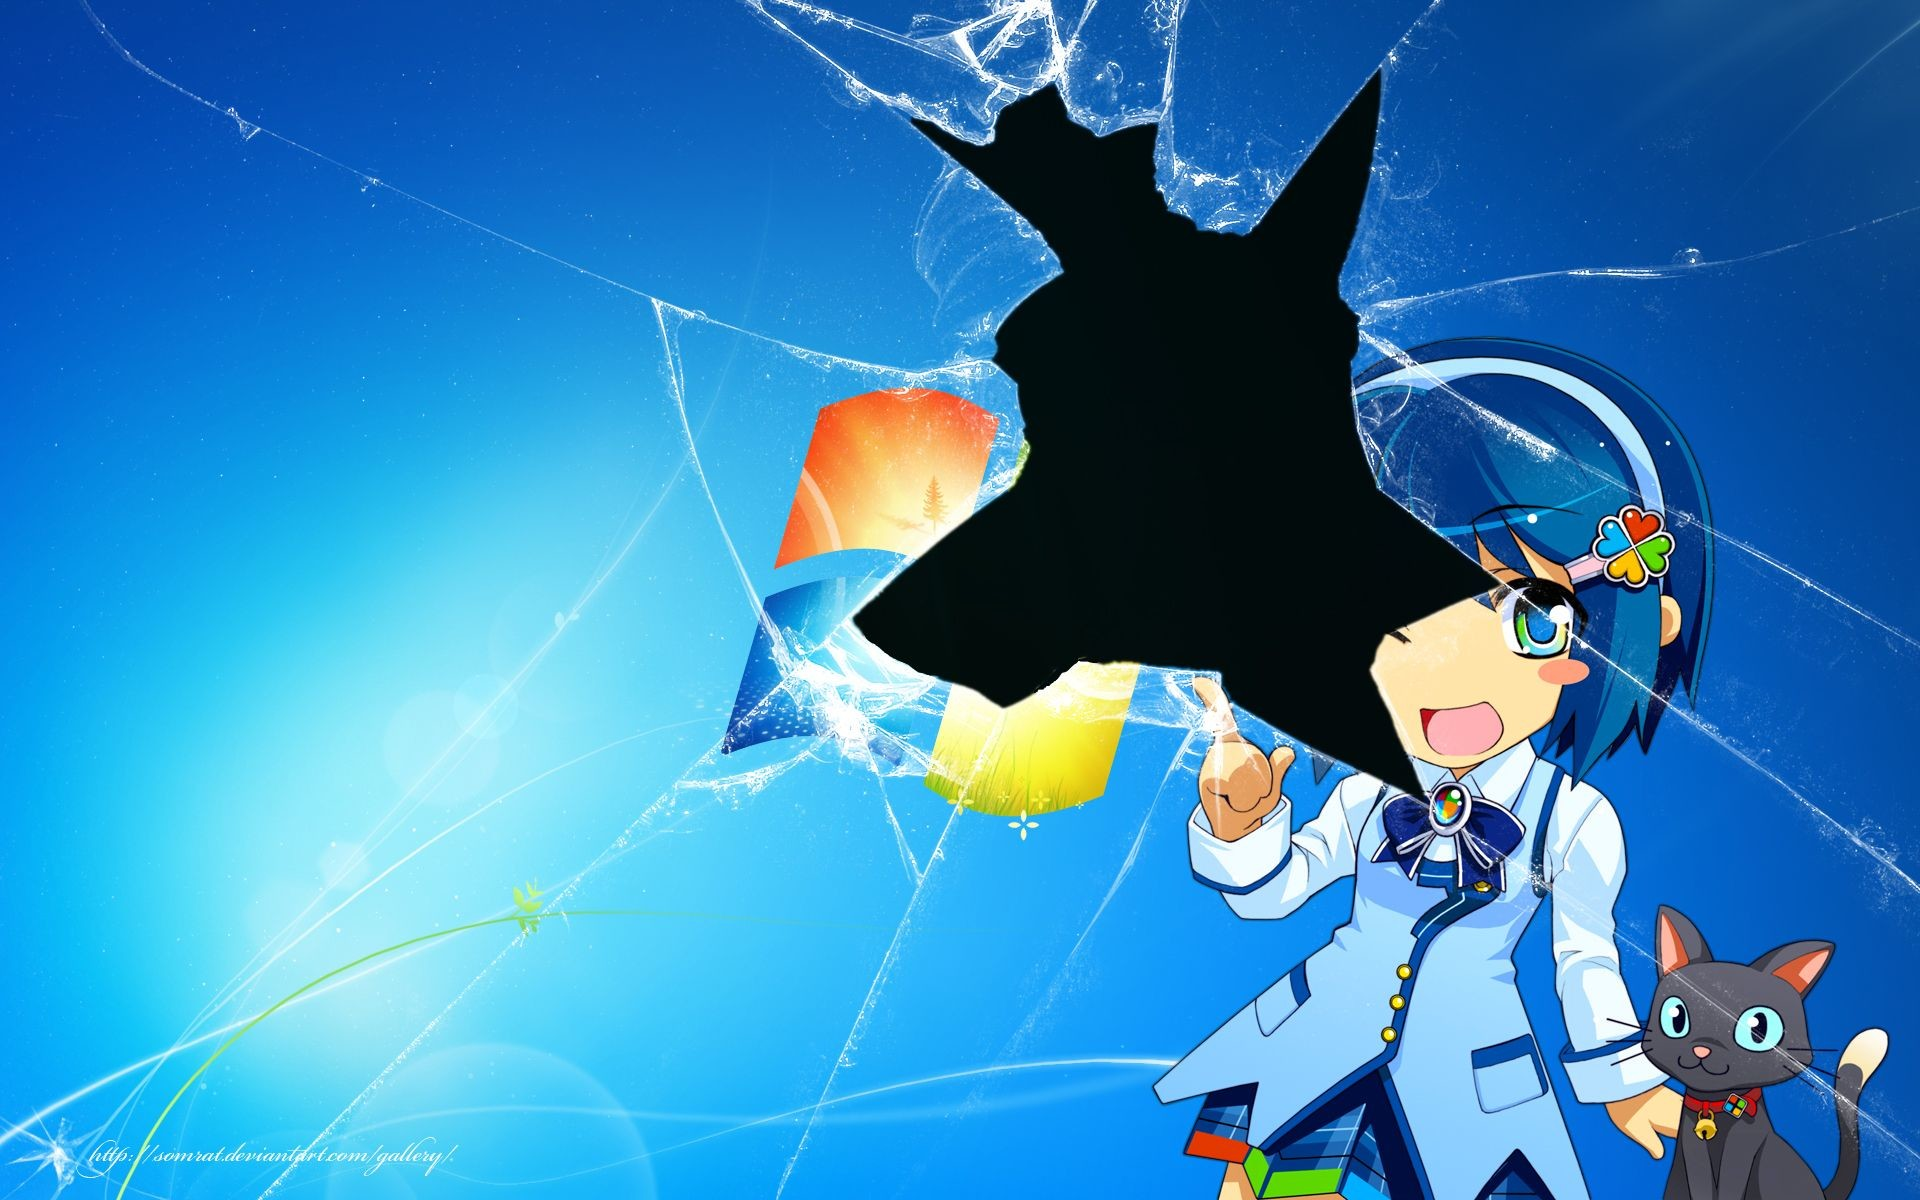 Res: 1920x1200, Windows-7-Anime-Wallpaper-Galerie-(39-Plus)-PIC-WPW4010858